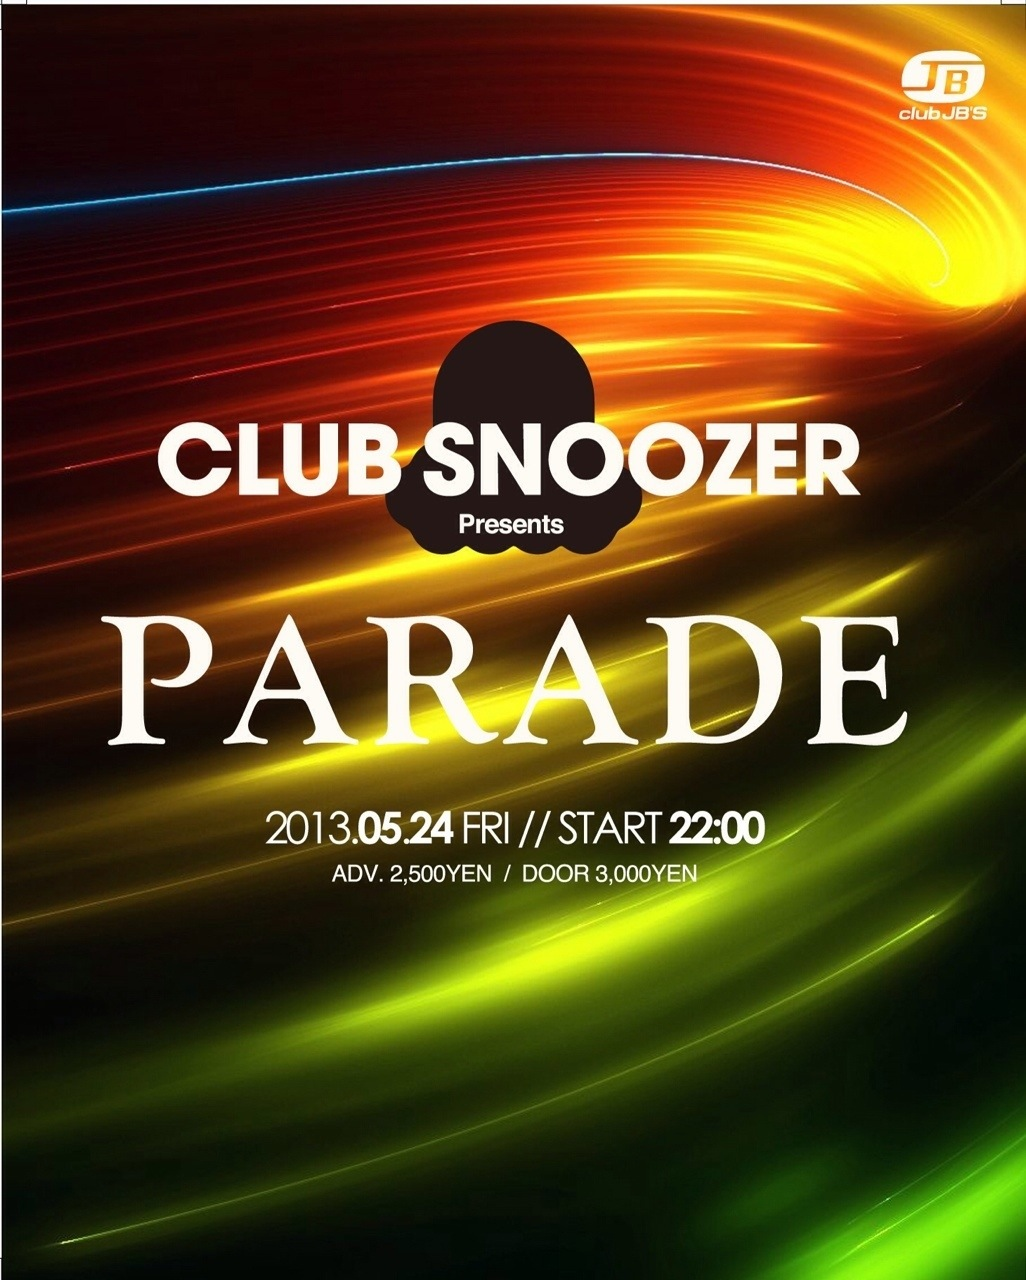 5/24 (FRI) 「CLUB SNOOZER meets Parade」 @名古屋 CLUB JB'S_e0153779_0595738.jpg